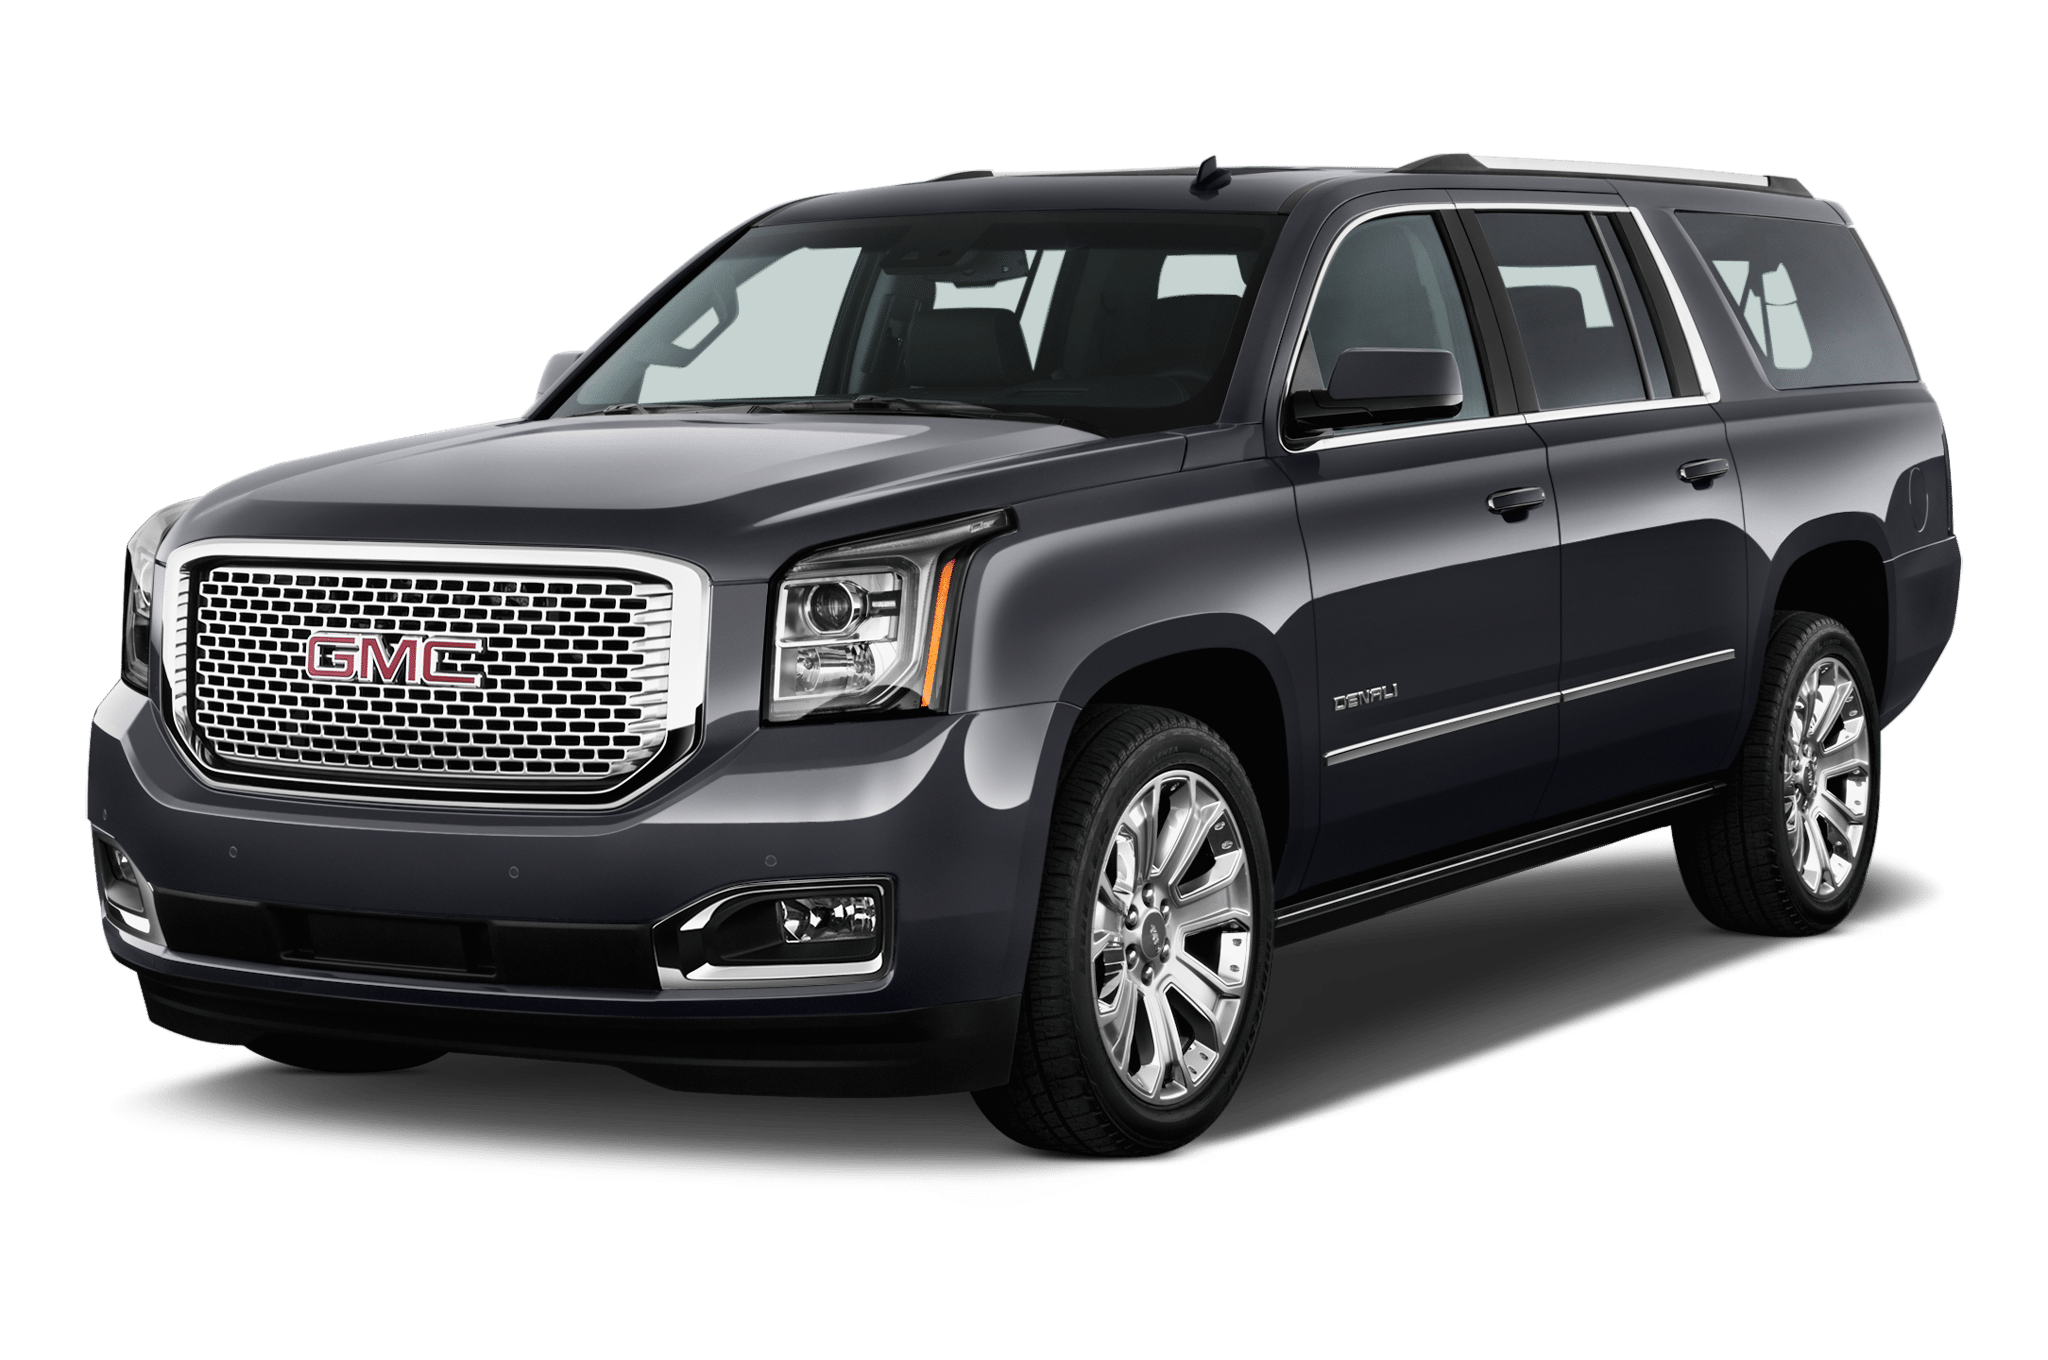 9 Passenger Suv >> Top 9 Passenger Vehicles Guide With 2018 Price Features